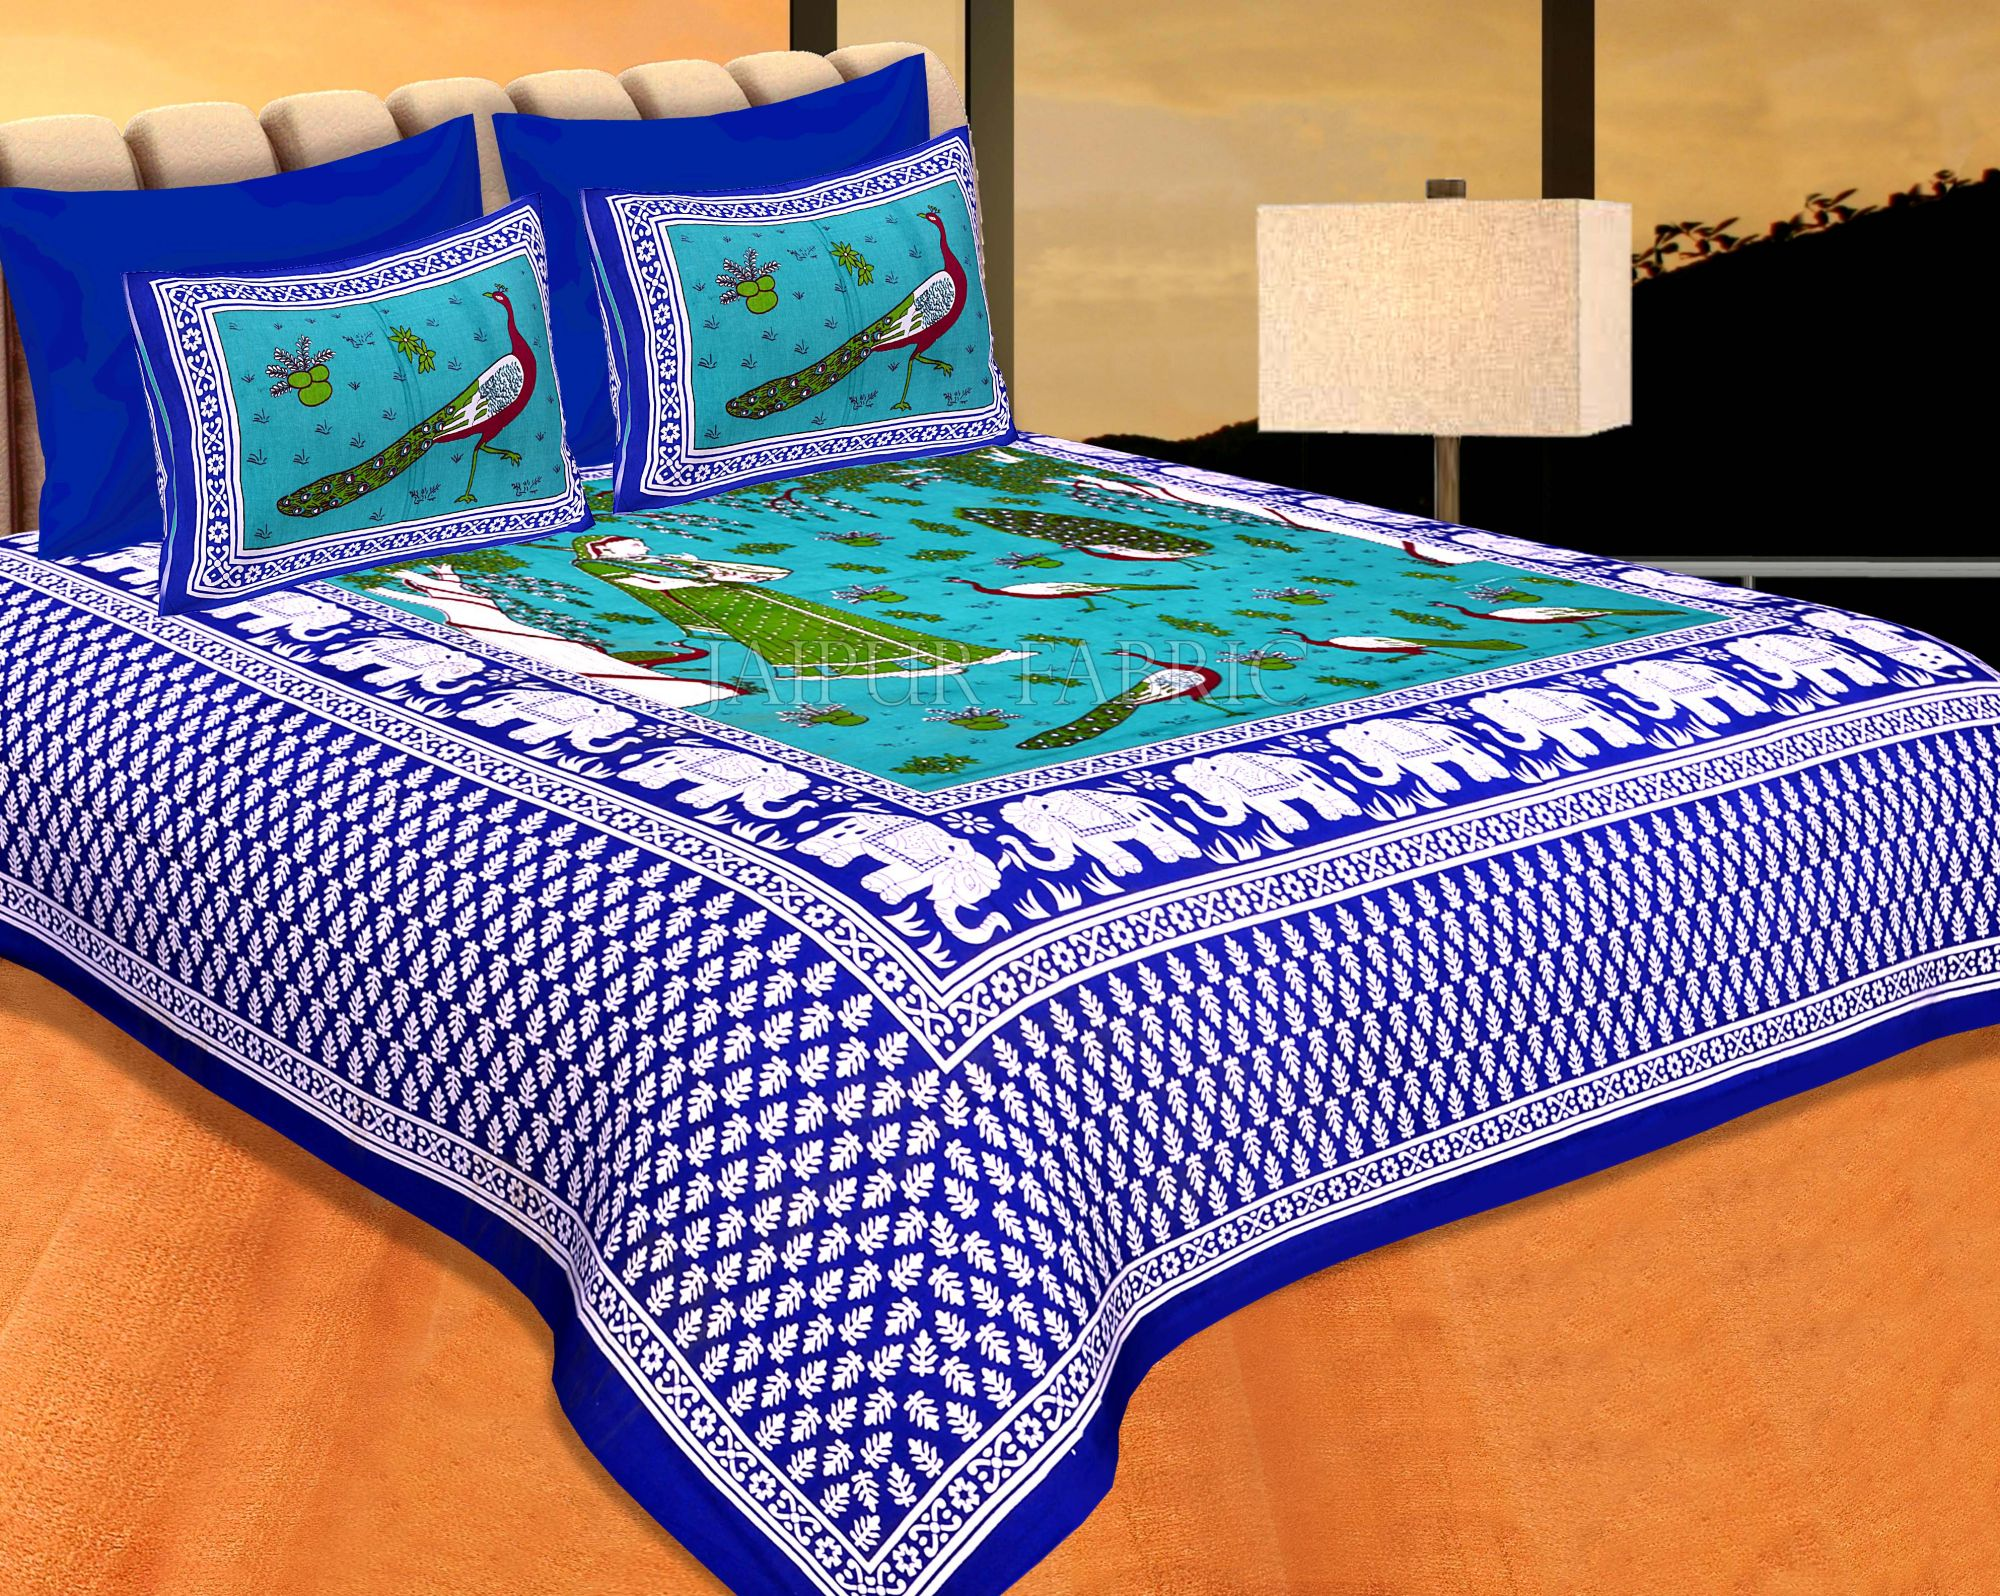 Neavy Blue Border Green Base Meera With Peacocks Cotton Double Bedsheet